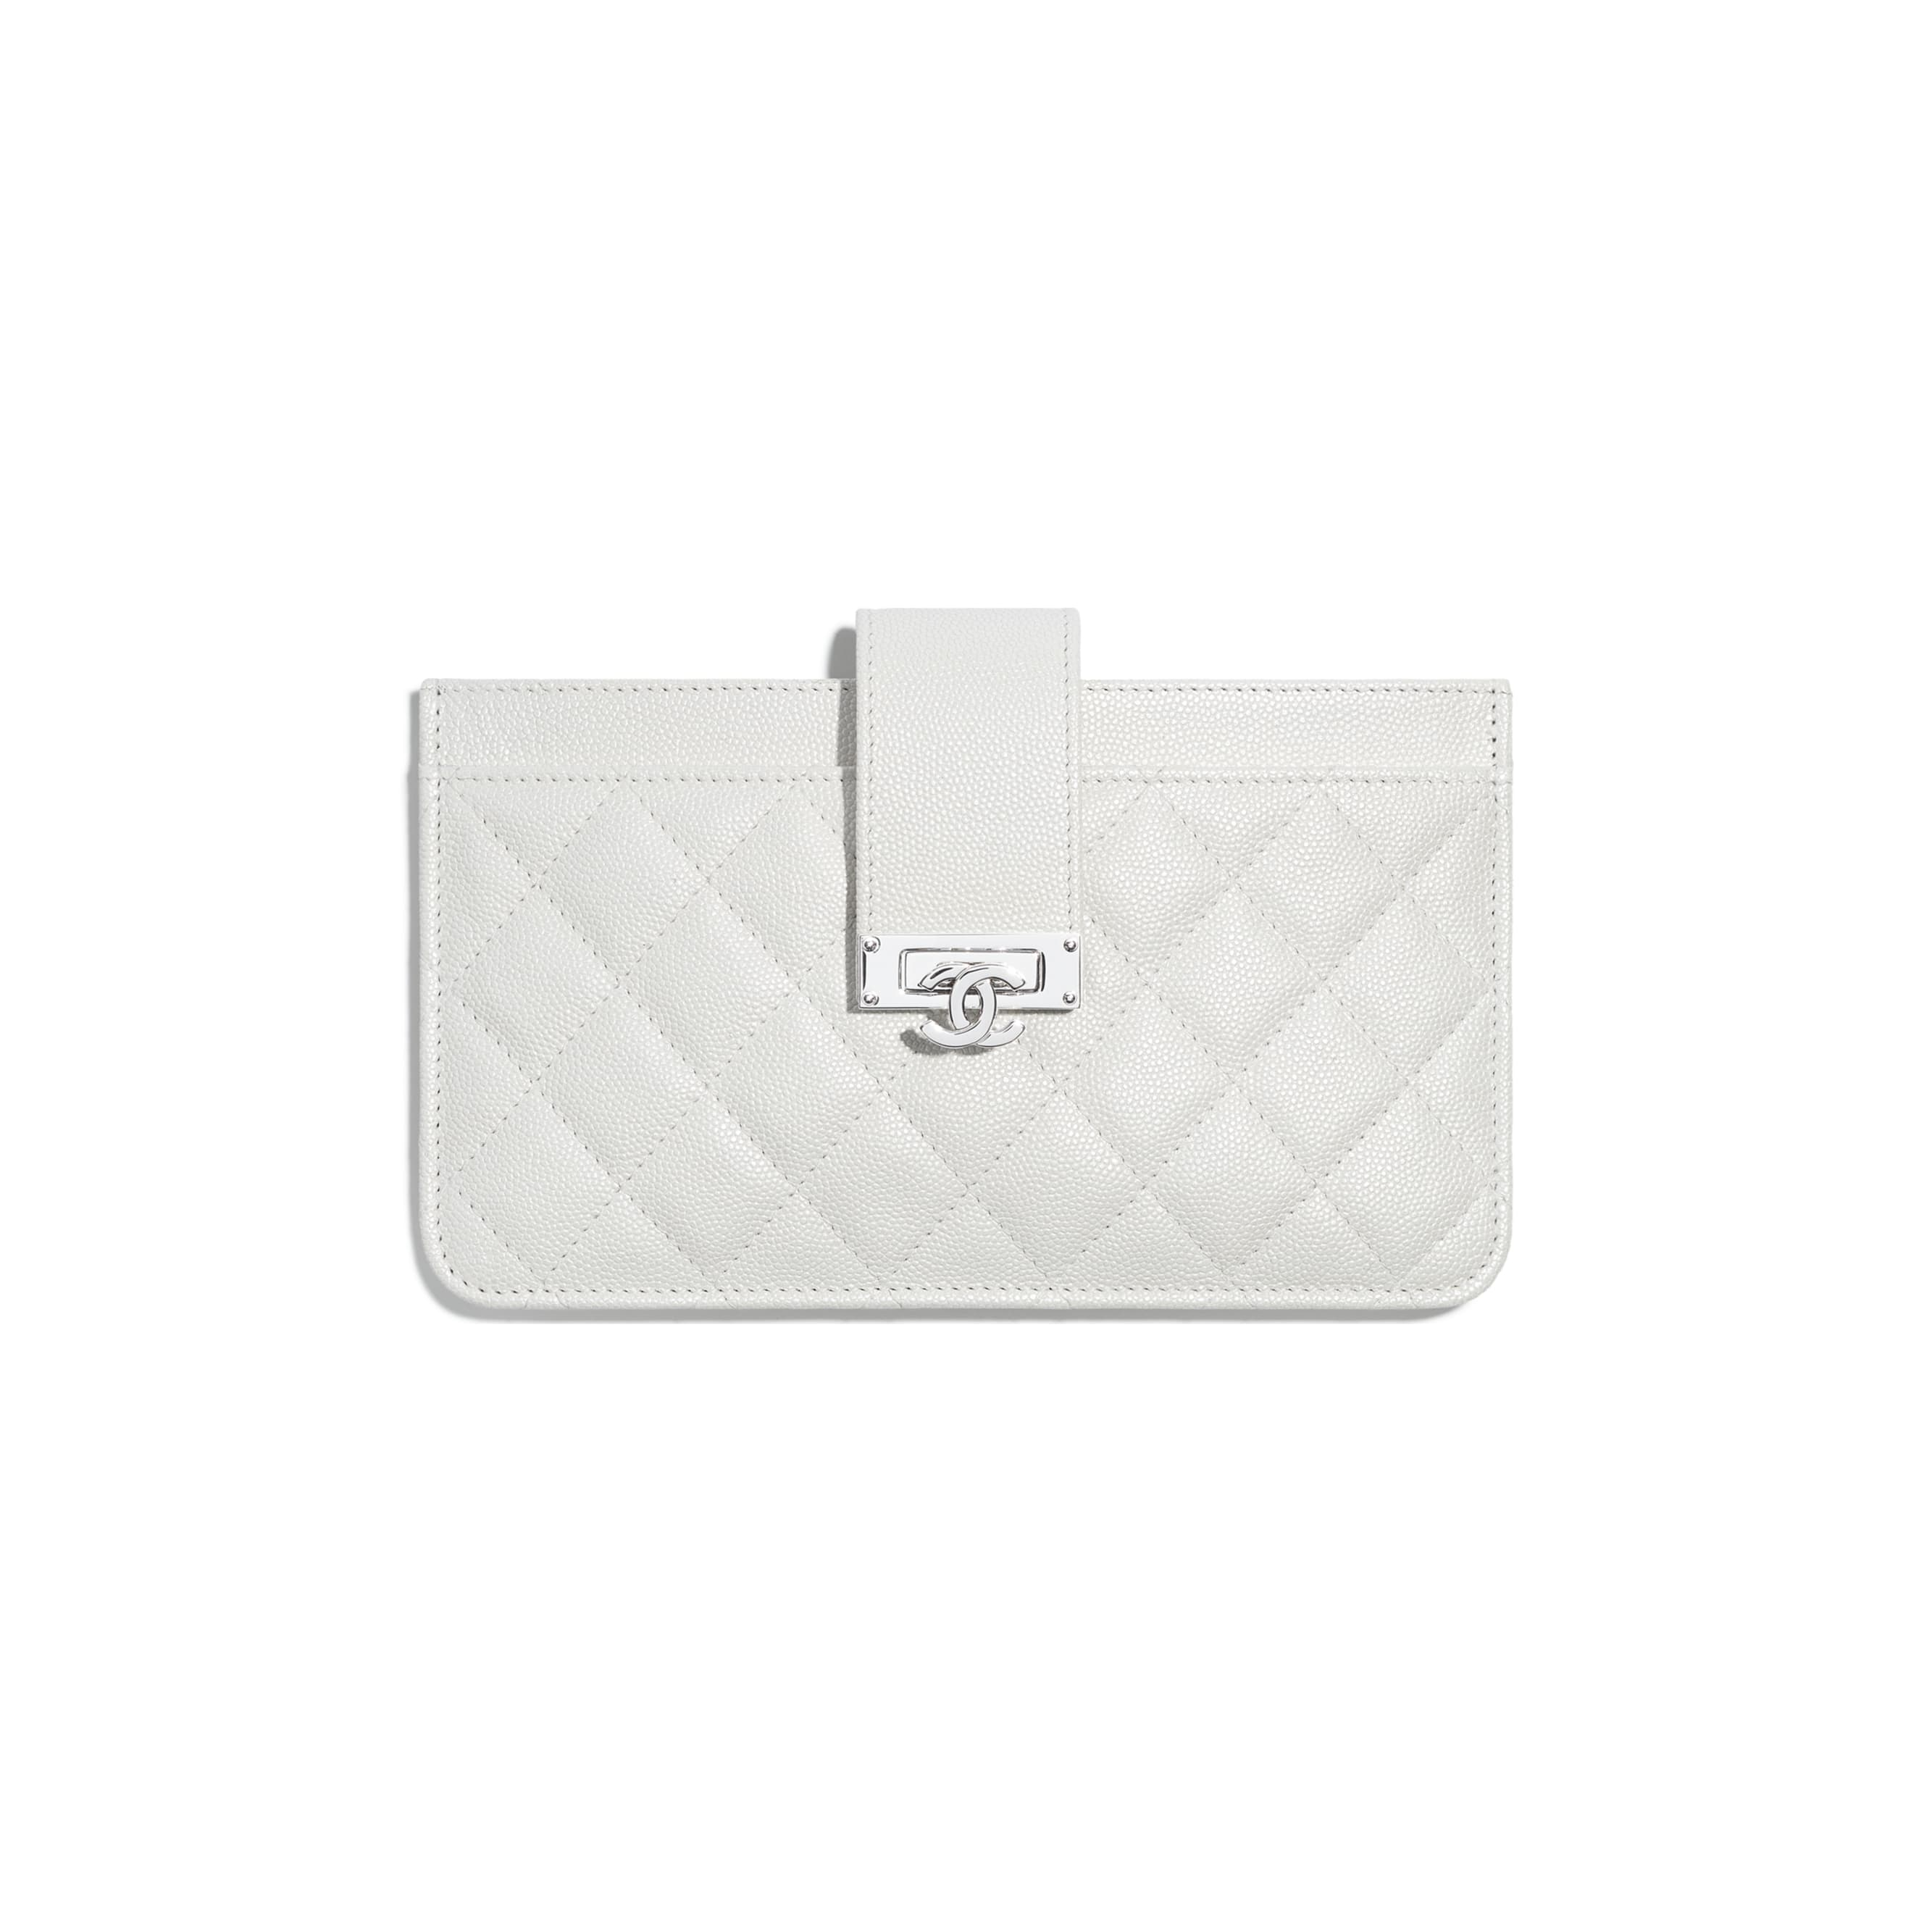 Pouch - White - Iridescent Grained Goatskin & Silver-Tone Metal - Default view - see standard sized version